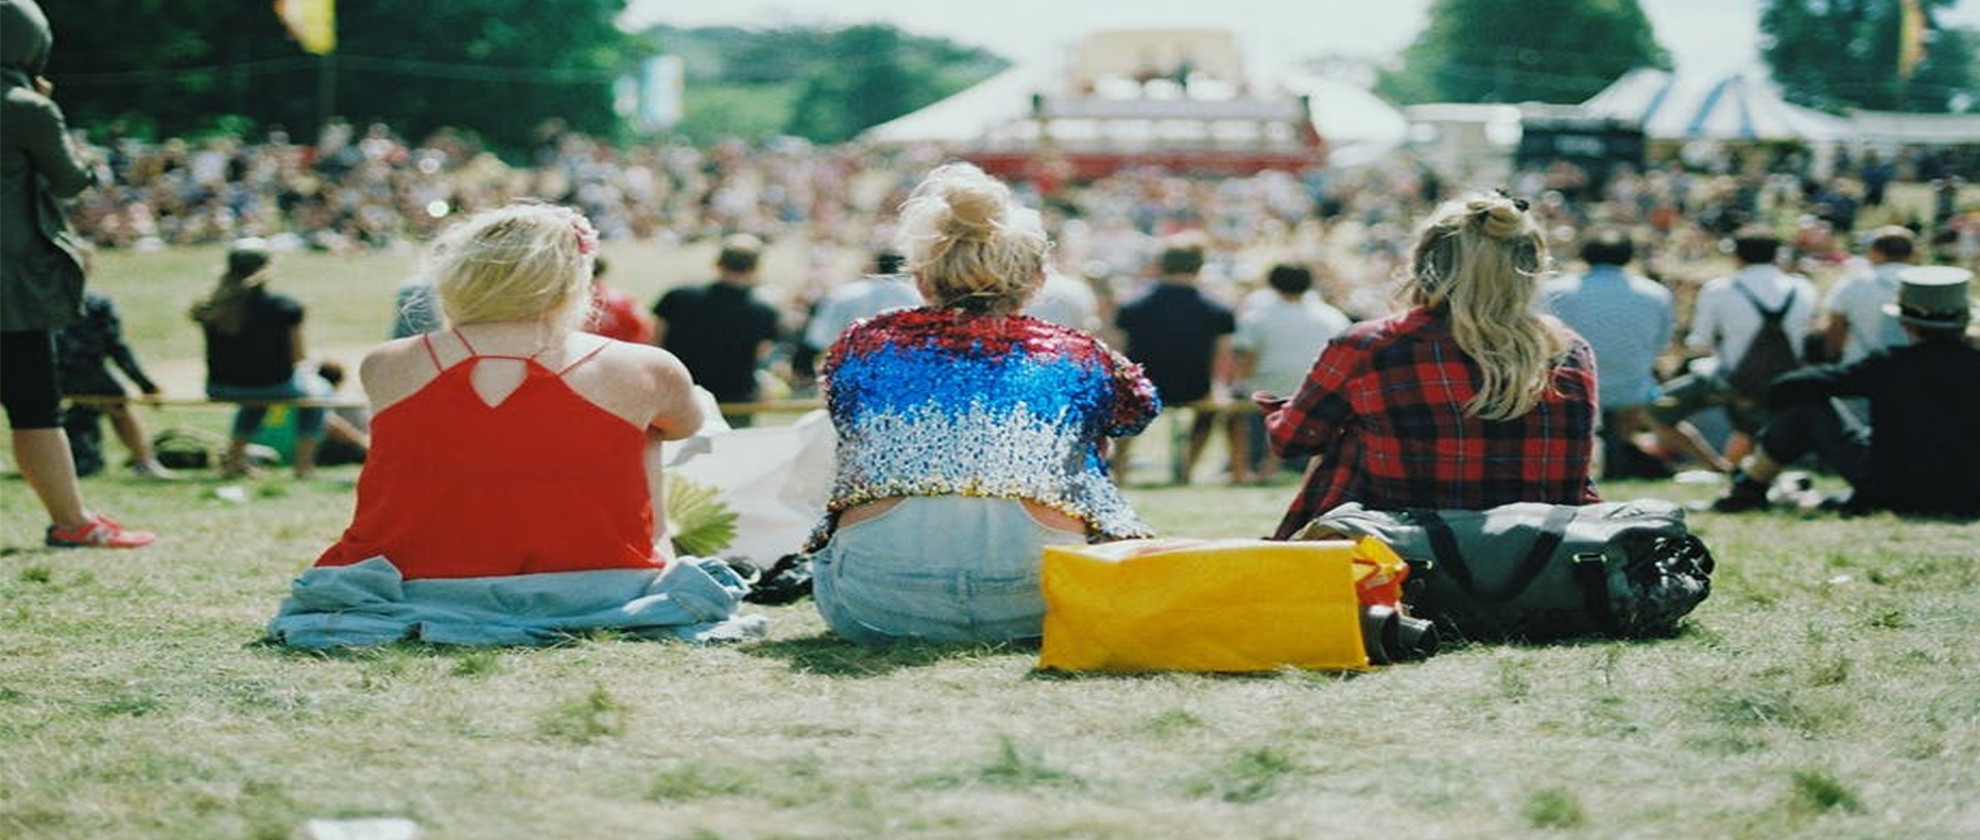 Top 10 Festival Fashion Essentials